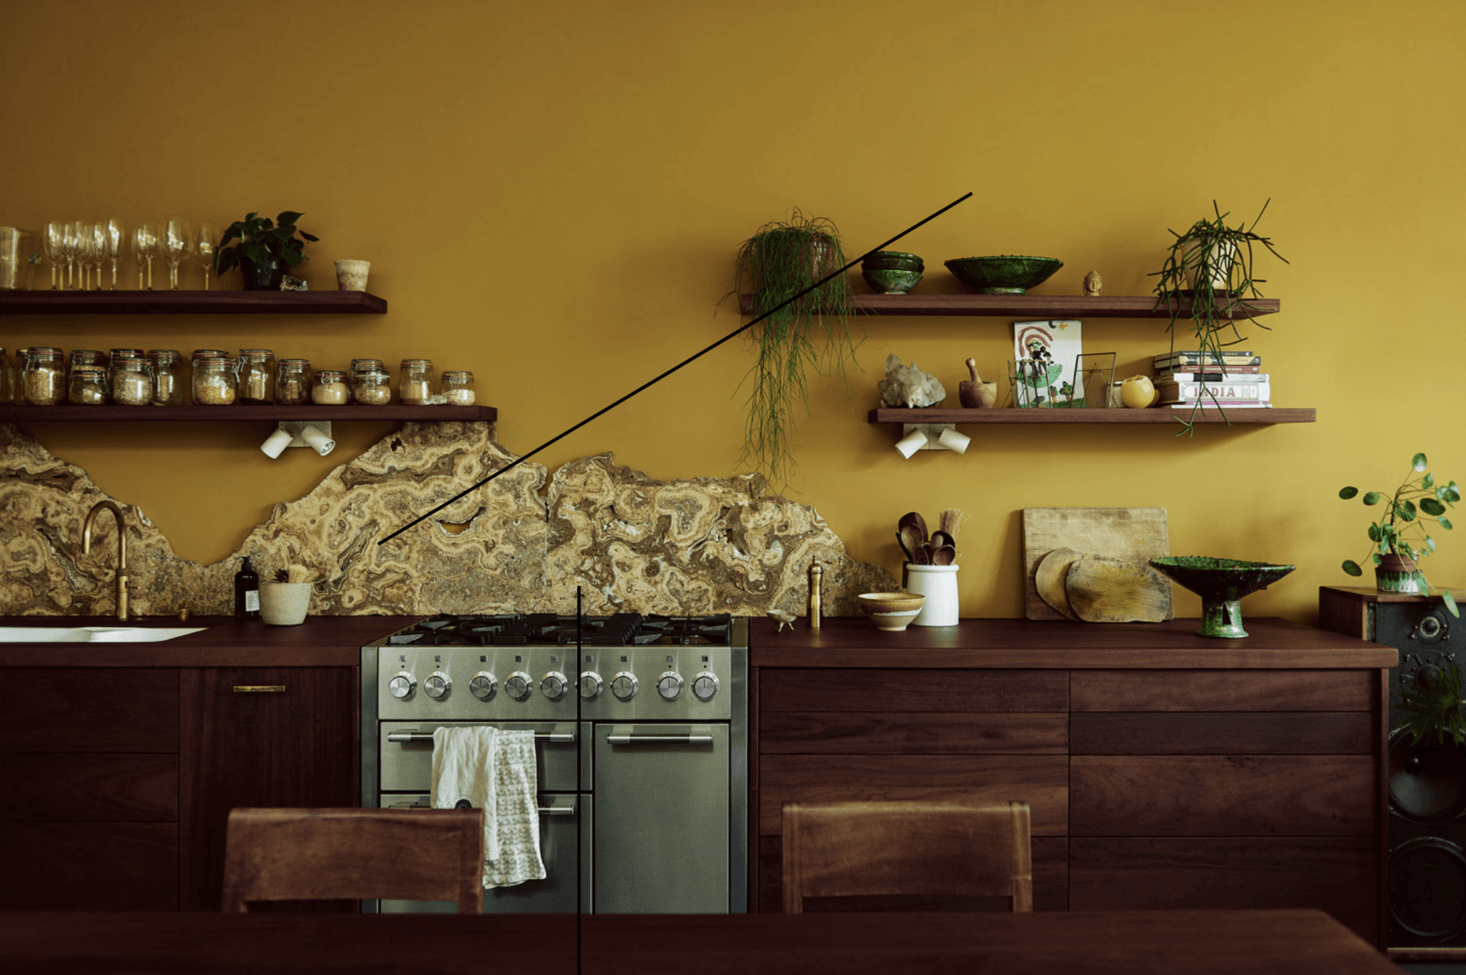 Salvage specialists Retrouvius of London used a natural stone backsplash in this West London kitchen. Go to Masters of Salvage to see another standout remodel of theirs. Photograph by Michael Sinclair.